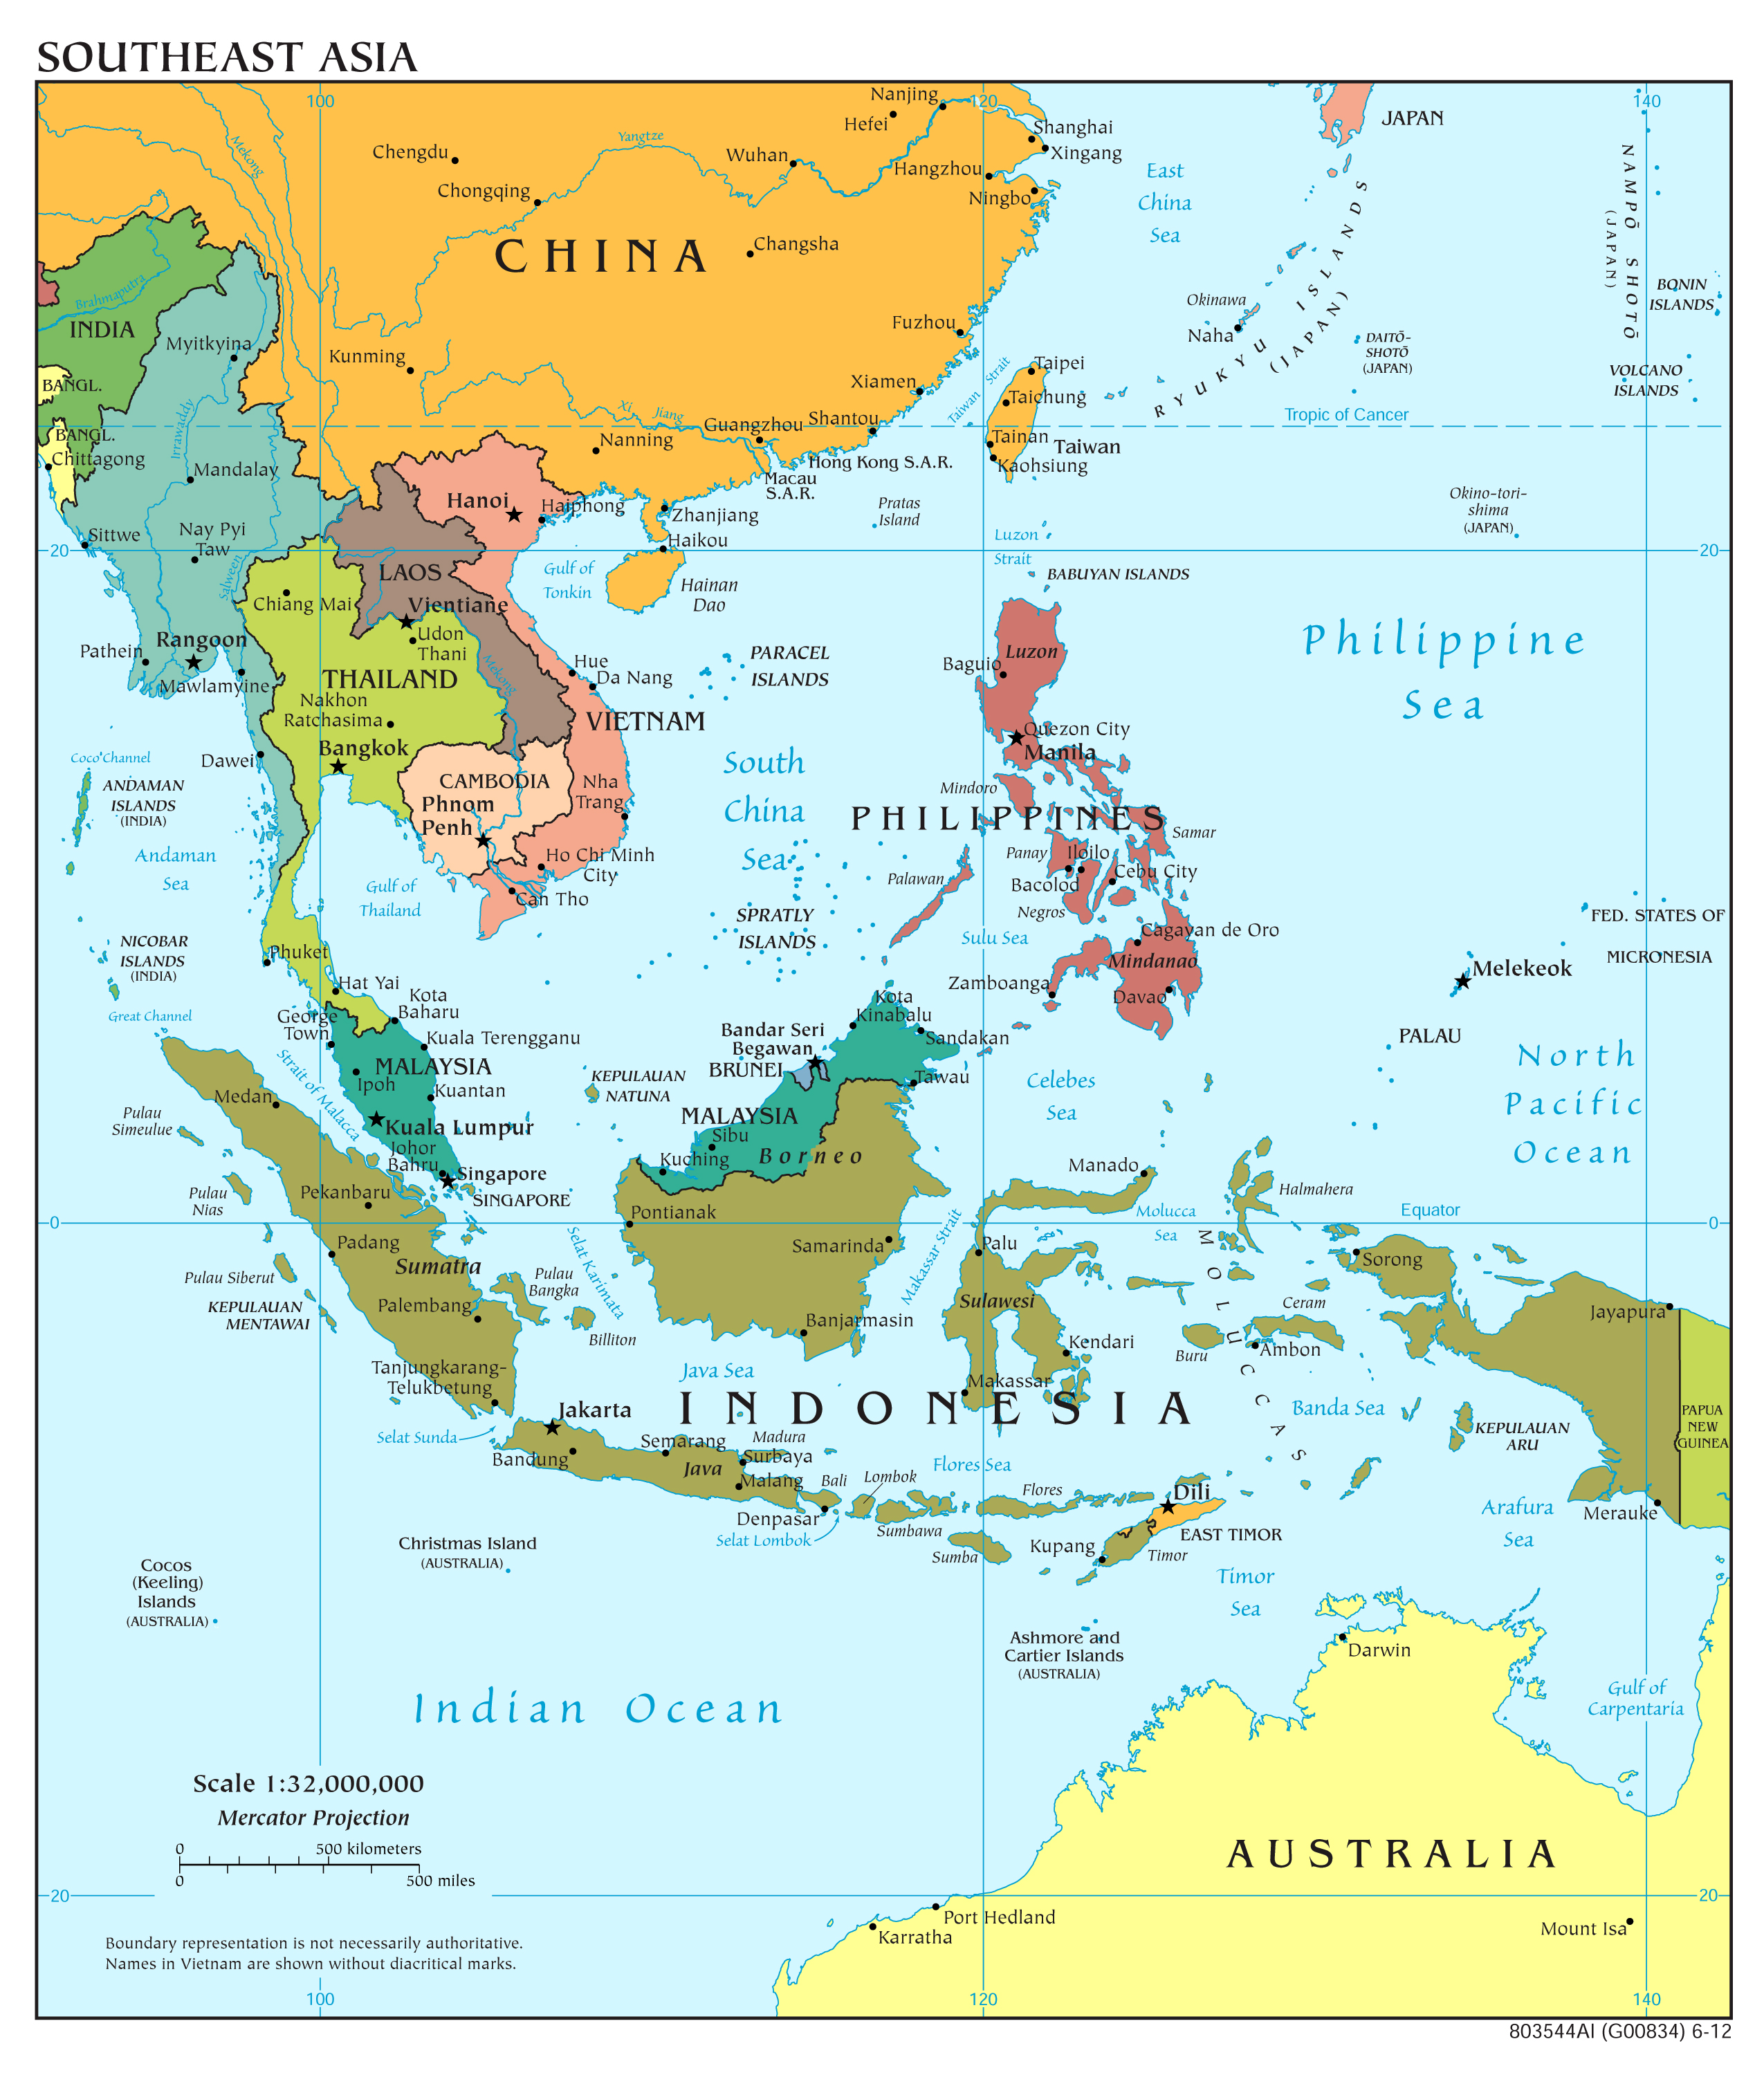 southeast asia and oceania political map Large Scale Political Map Of Southeast Asia 2012 Vidiani Com